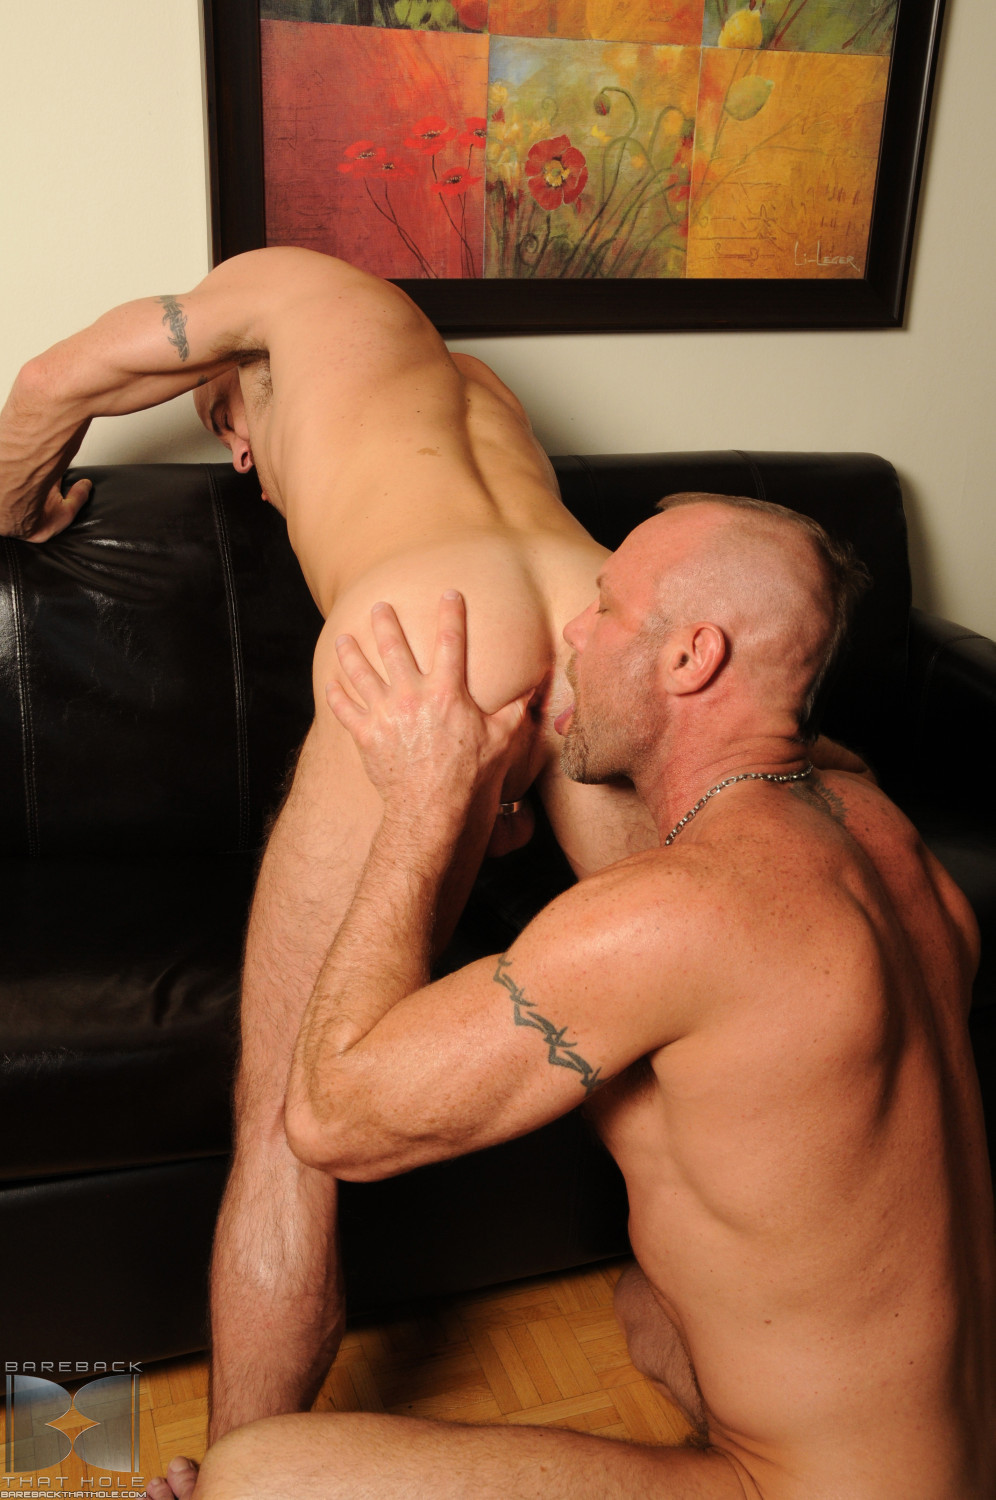 Bareback-That-Hole-Chad-Brock-and-Ben-Statham-big-uncut-cock-10 Bareback That Hole: Chad Brock and Ben Statham